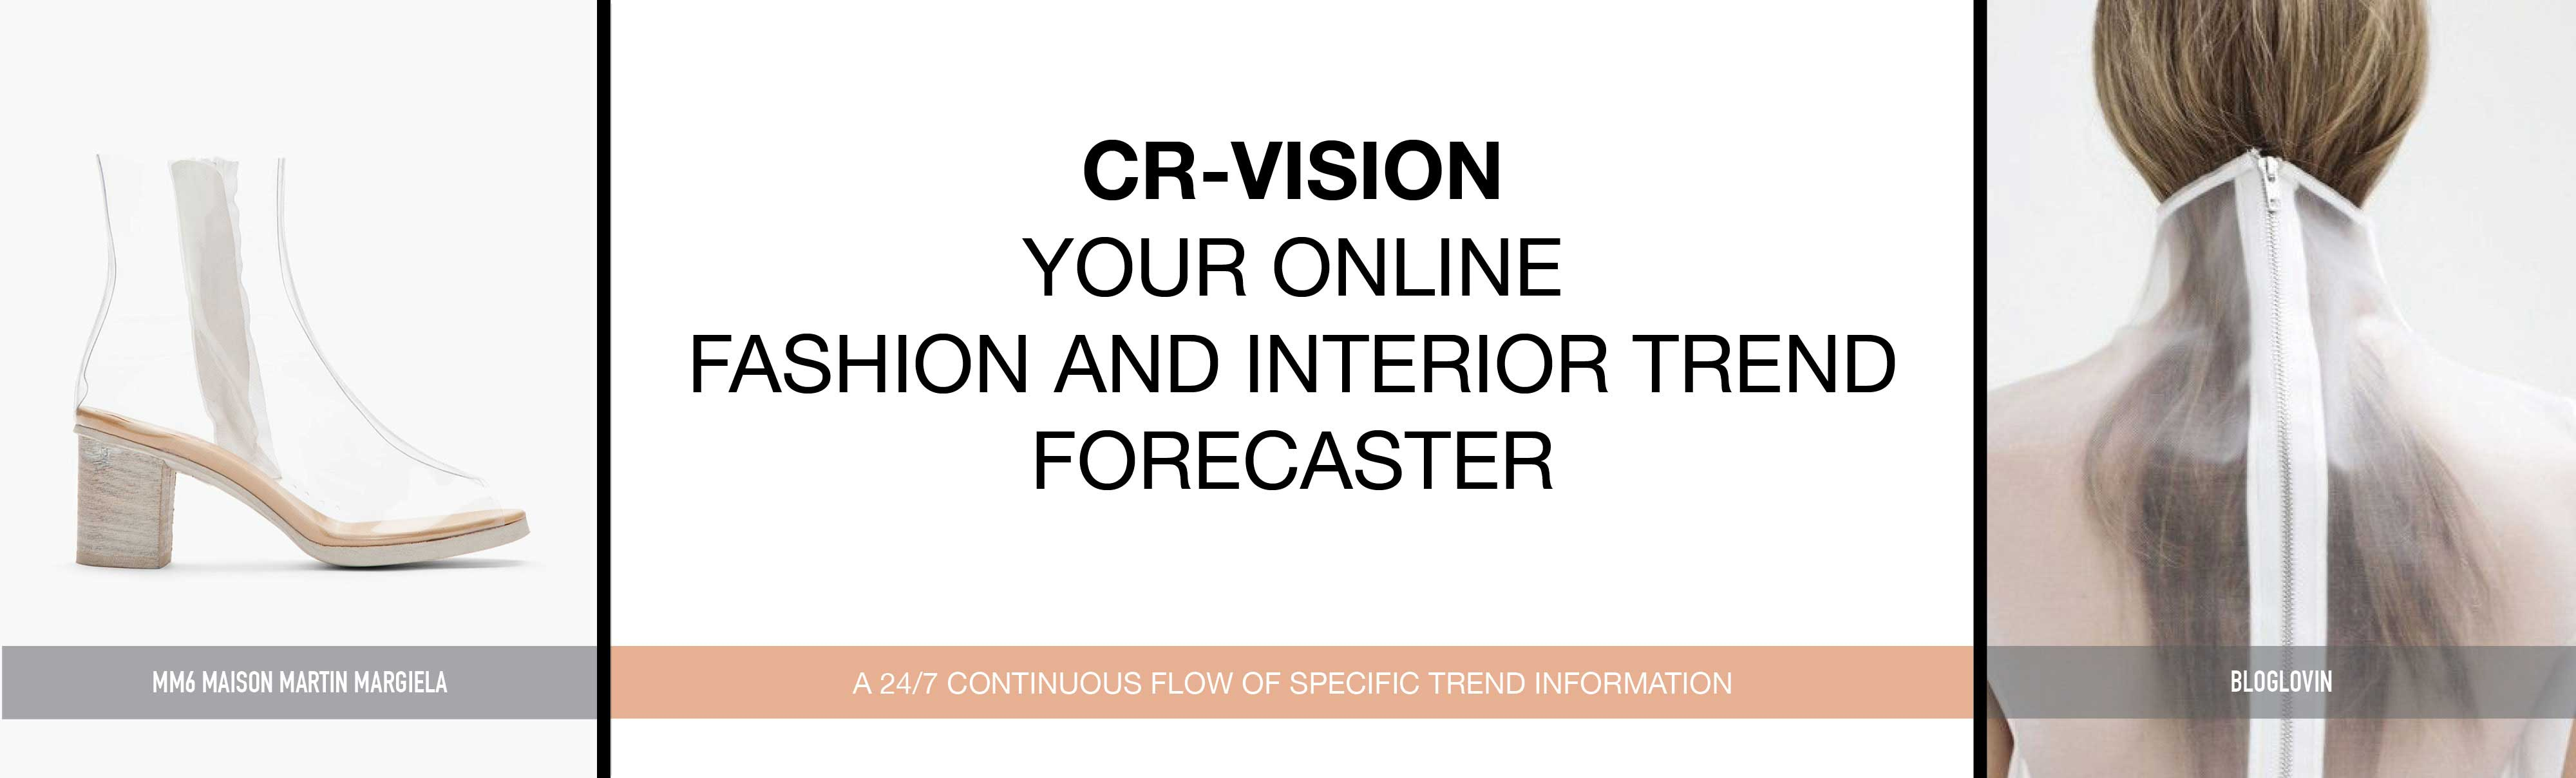 CR-Vision - Your online fashion interior trend forecaster